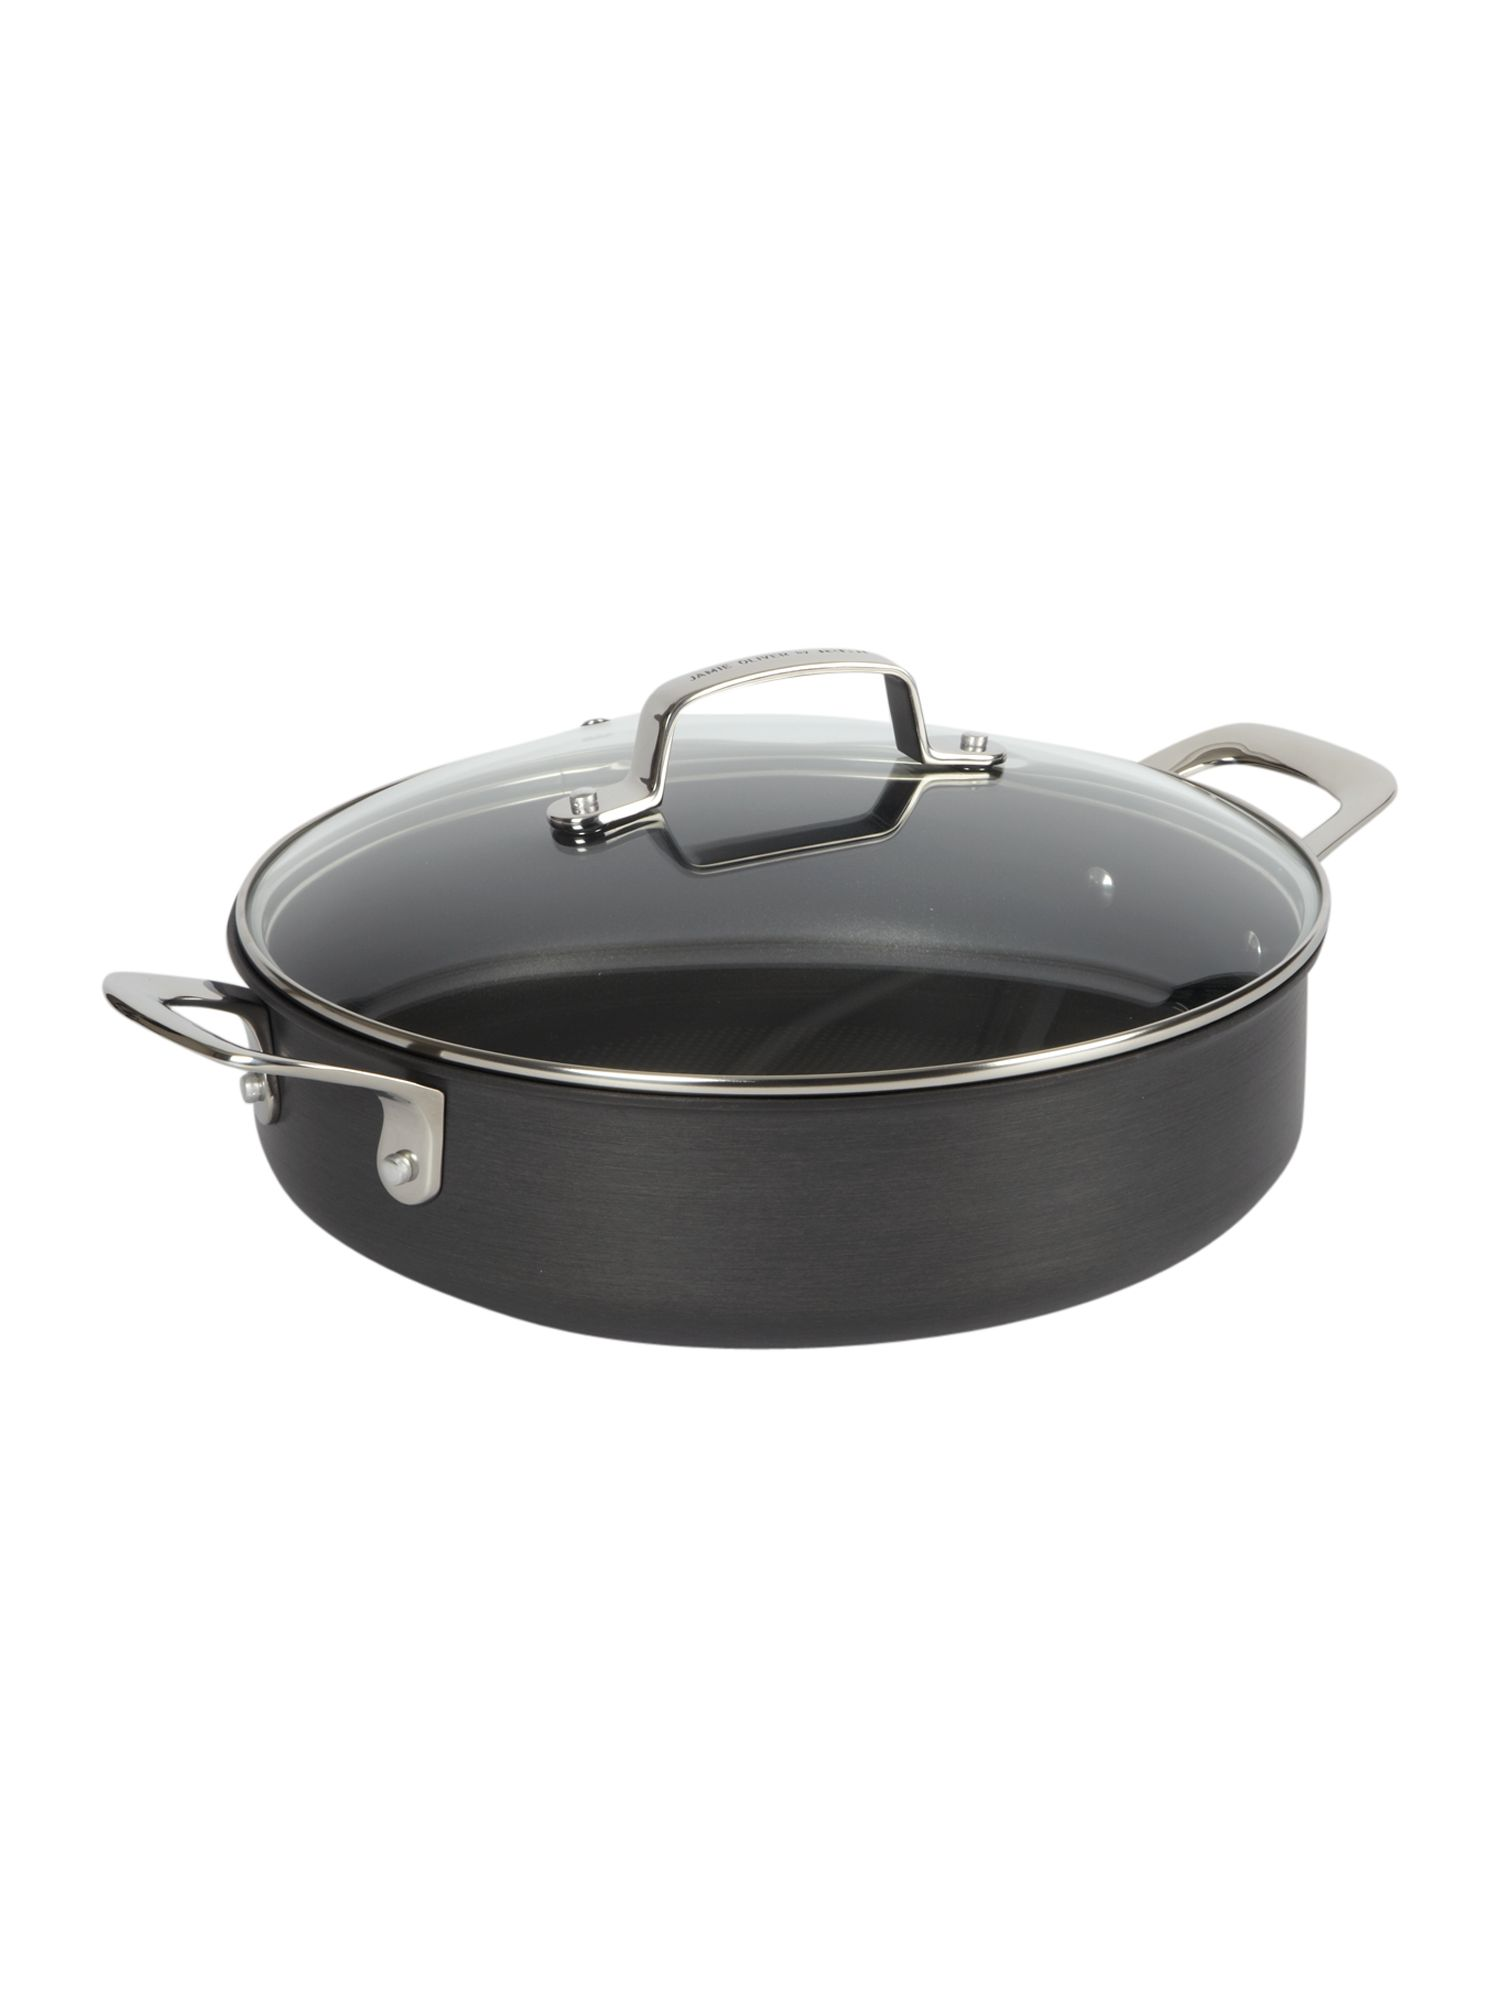 Jamie Oliver by Tefal Hard anodised roast pot